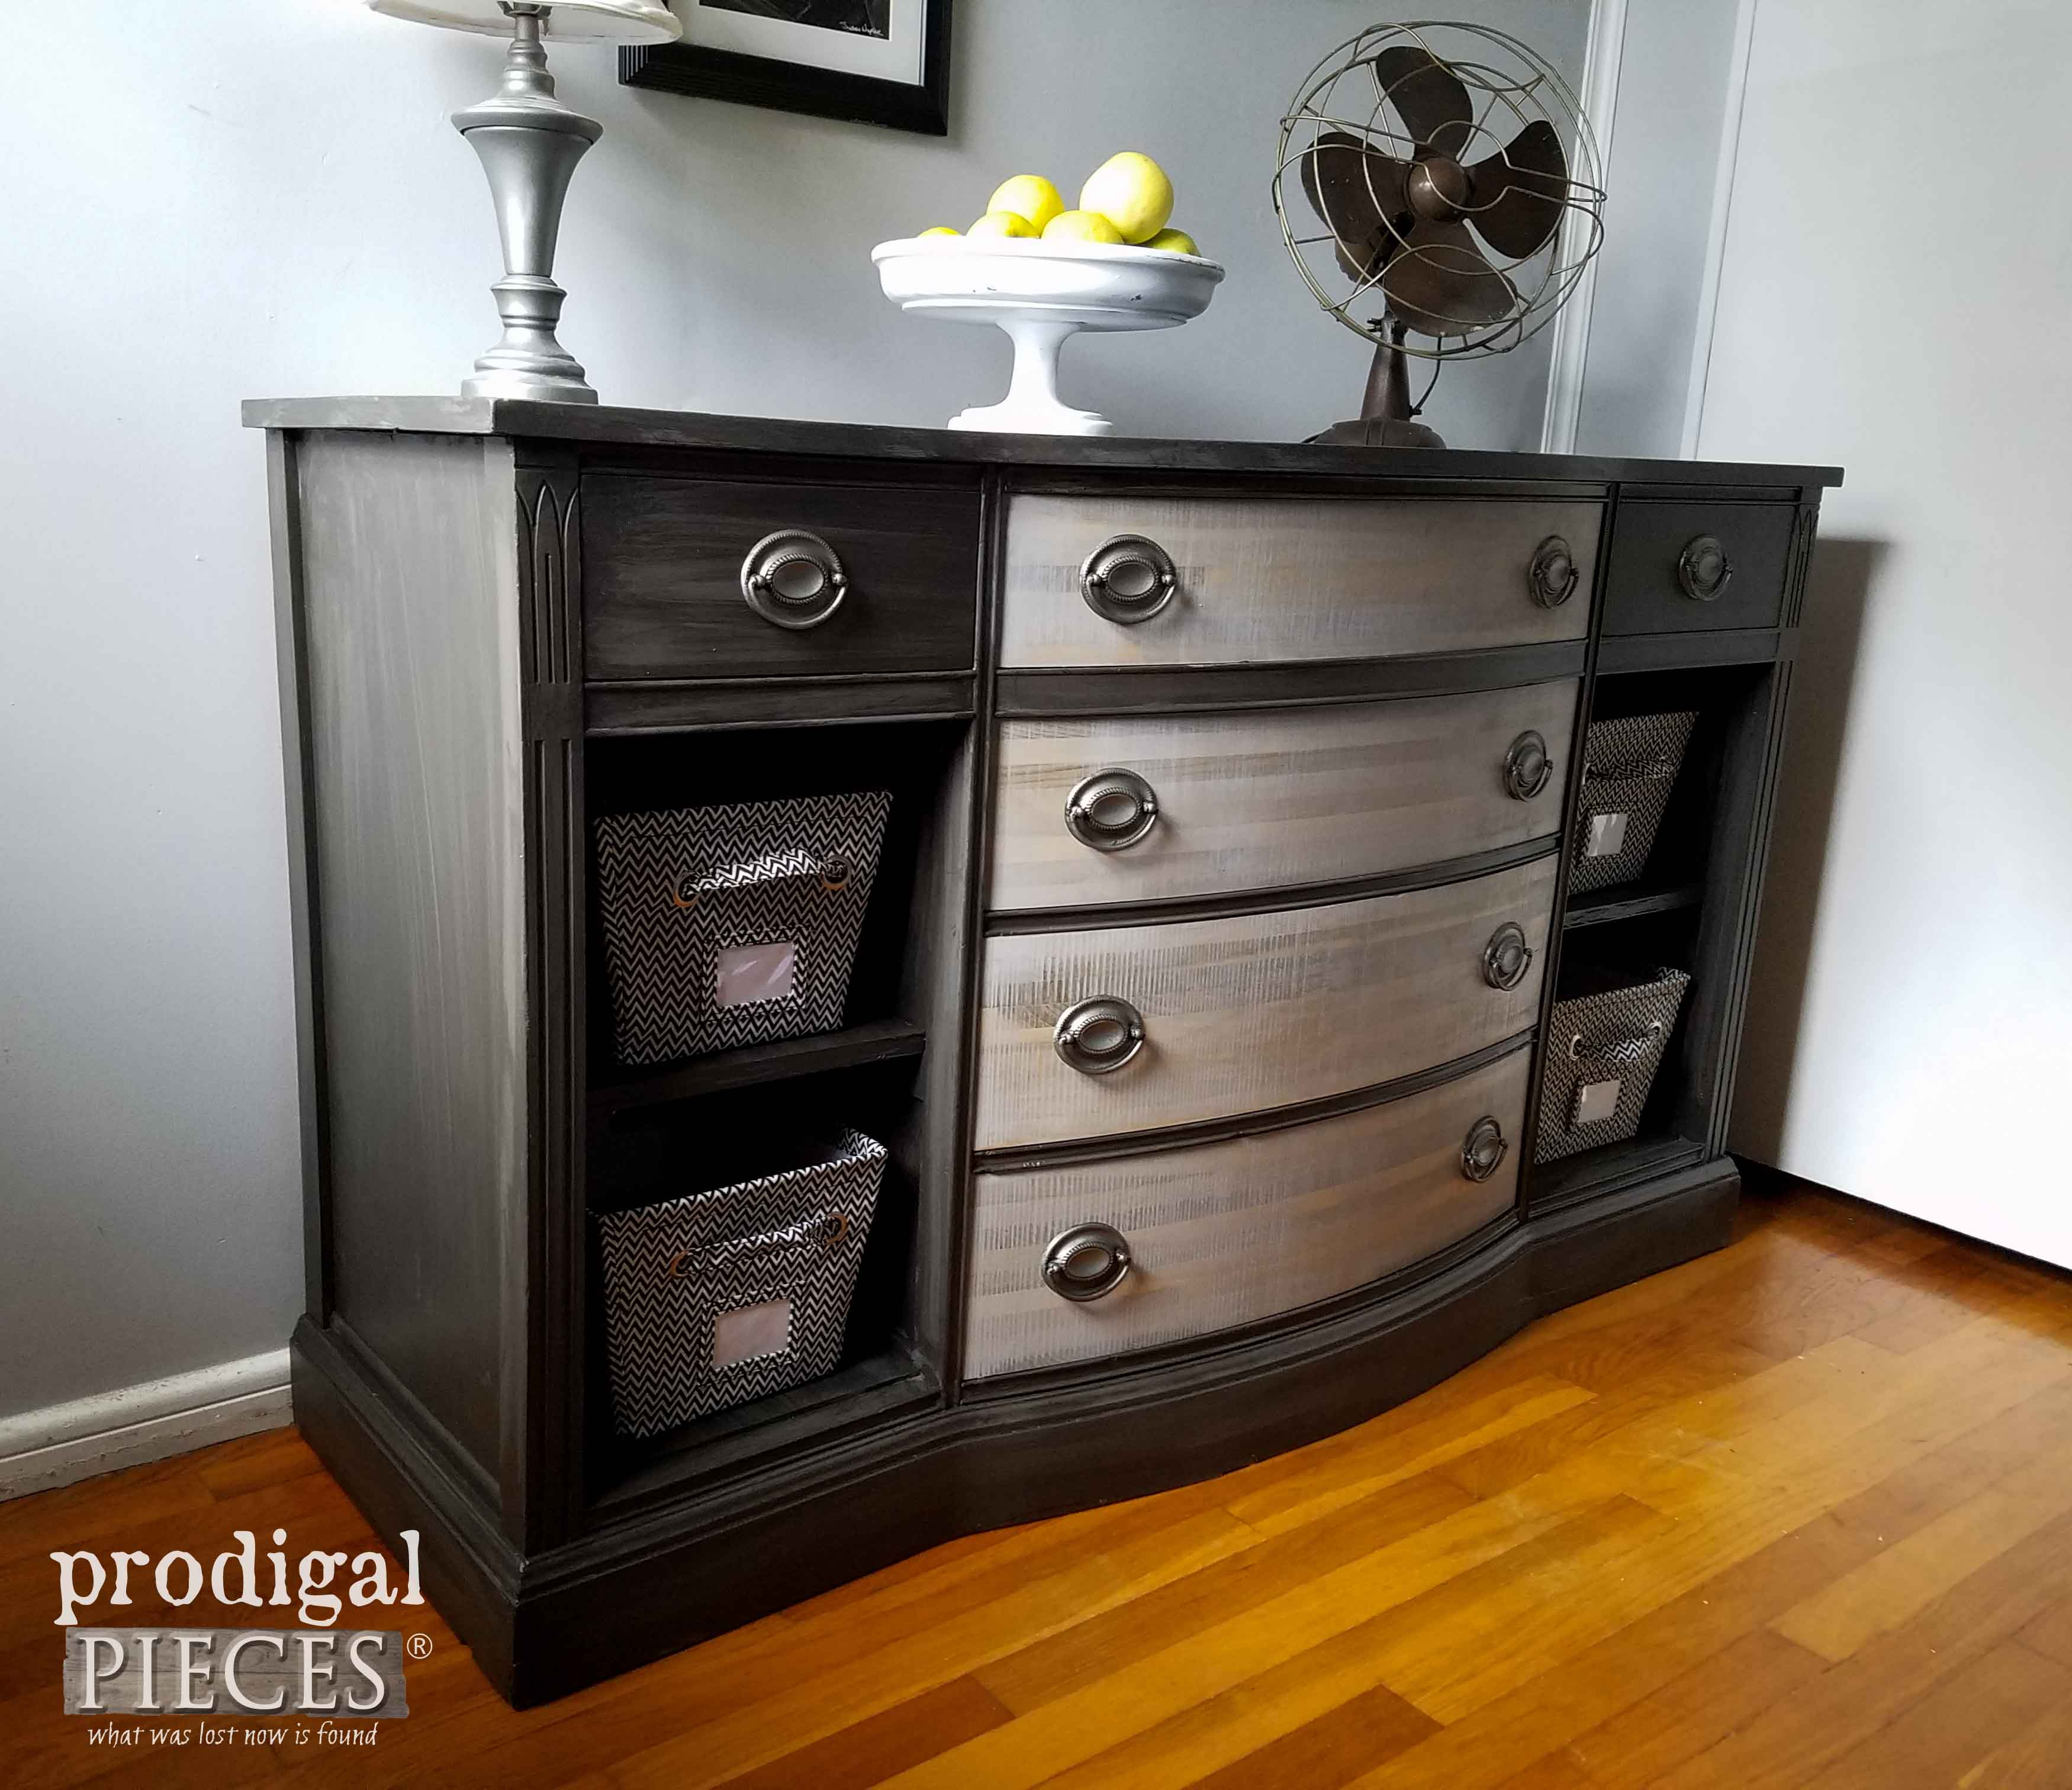 Worn Out Vintage Buffets Gets New Life by Teenage Boy | Prodigal Pieces | www.prodigalpieces.com